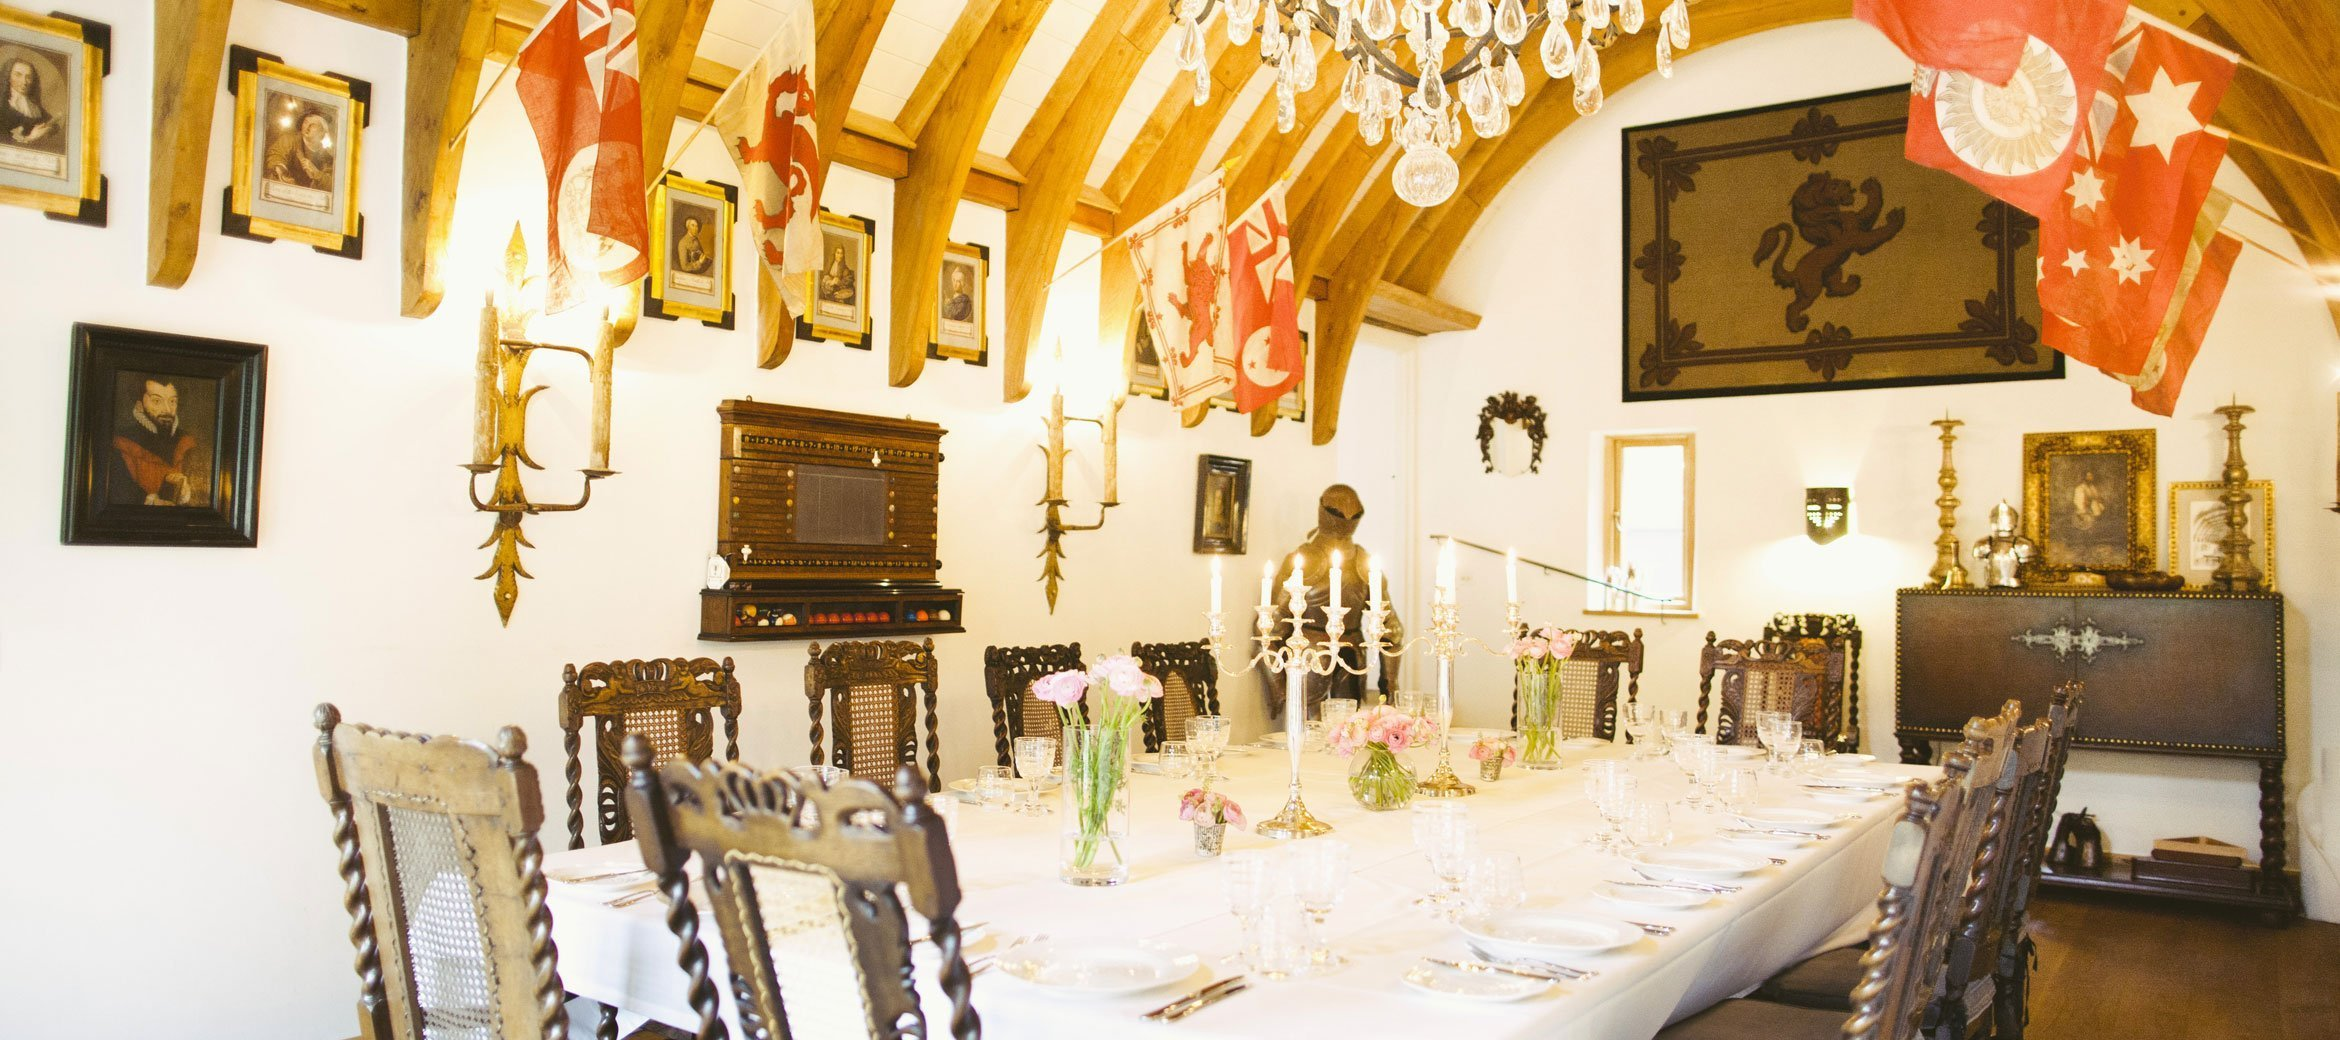 Temple-Guiting-Manor-Dining-Room